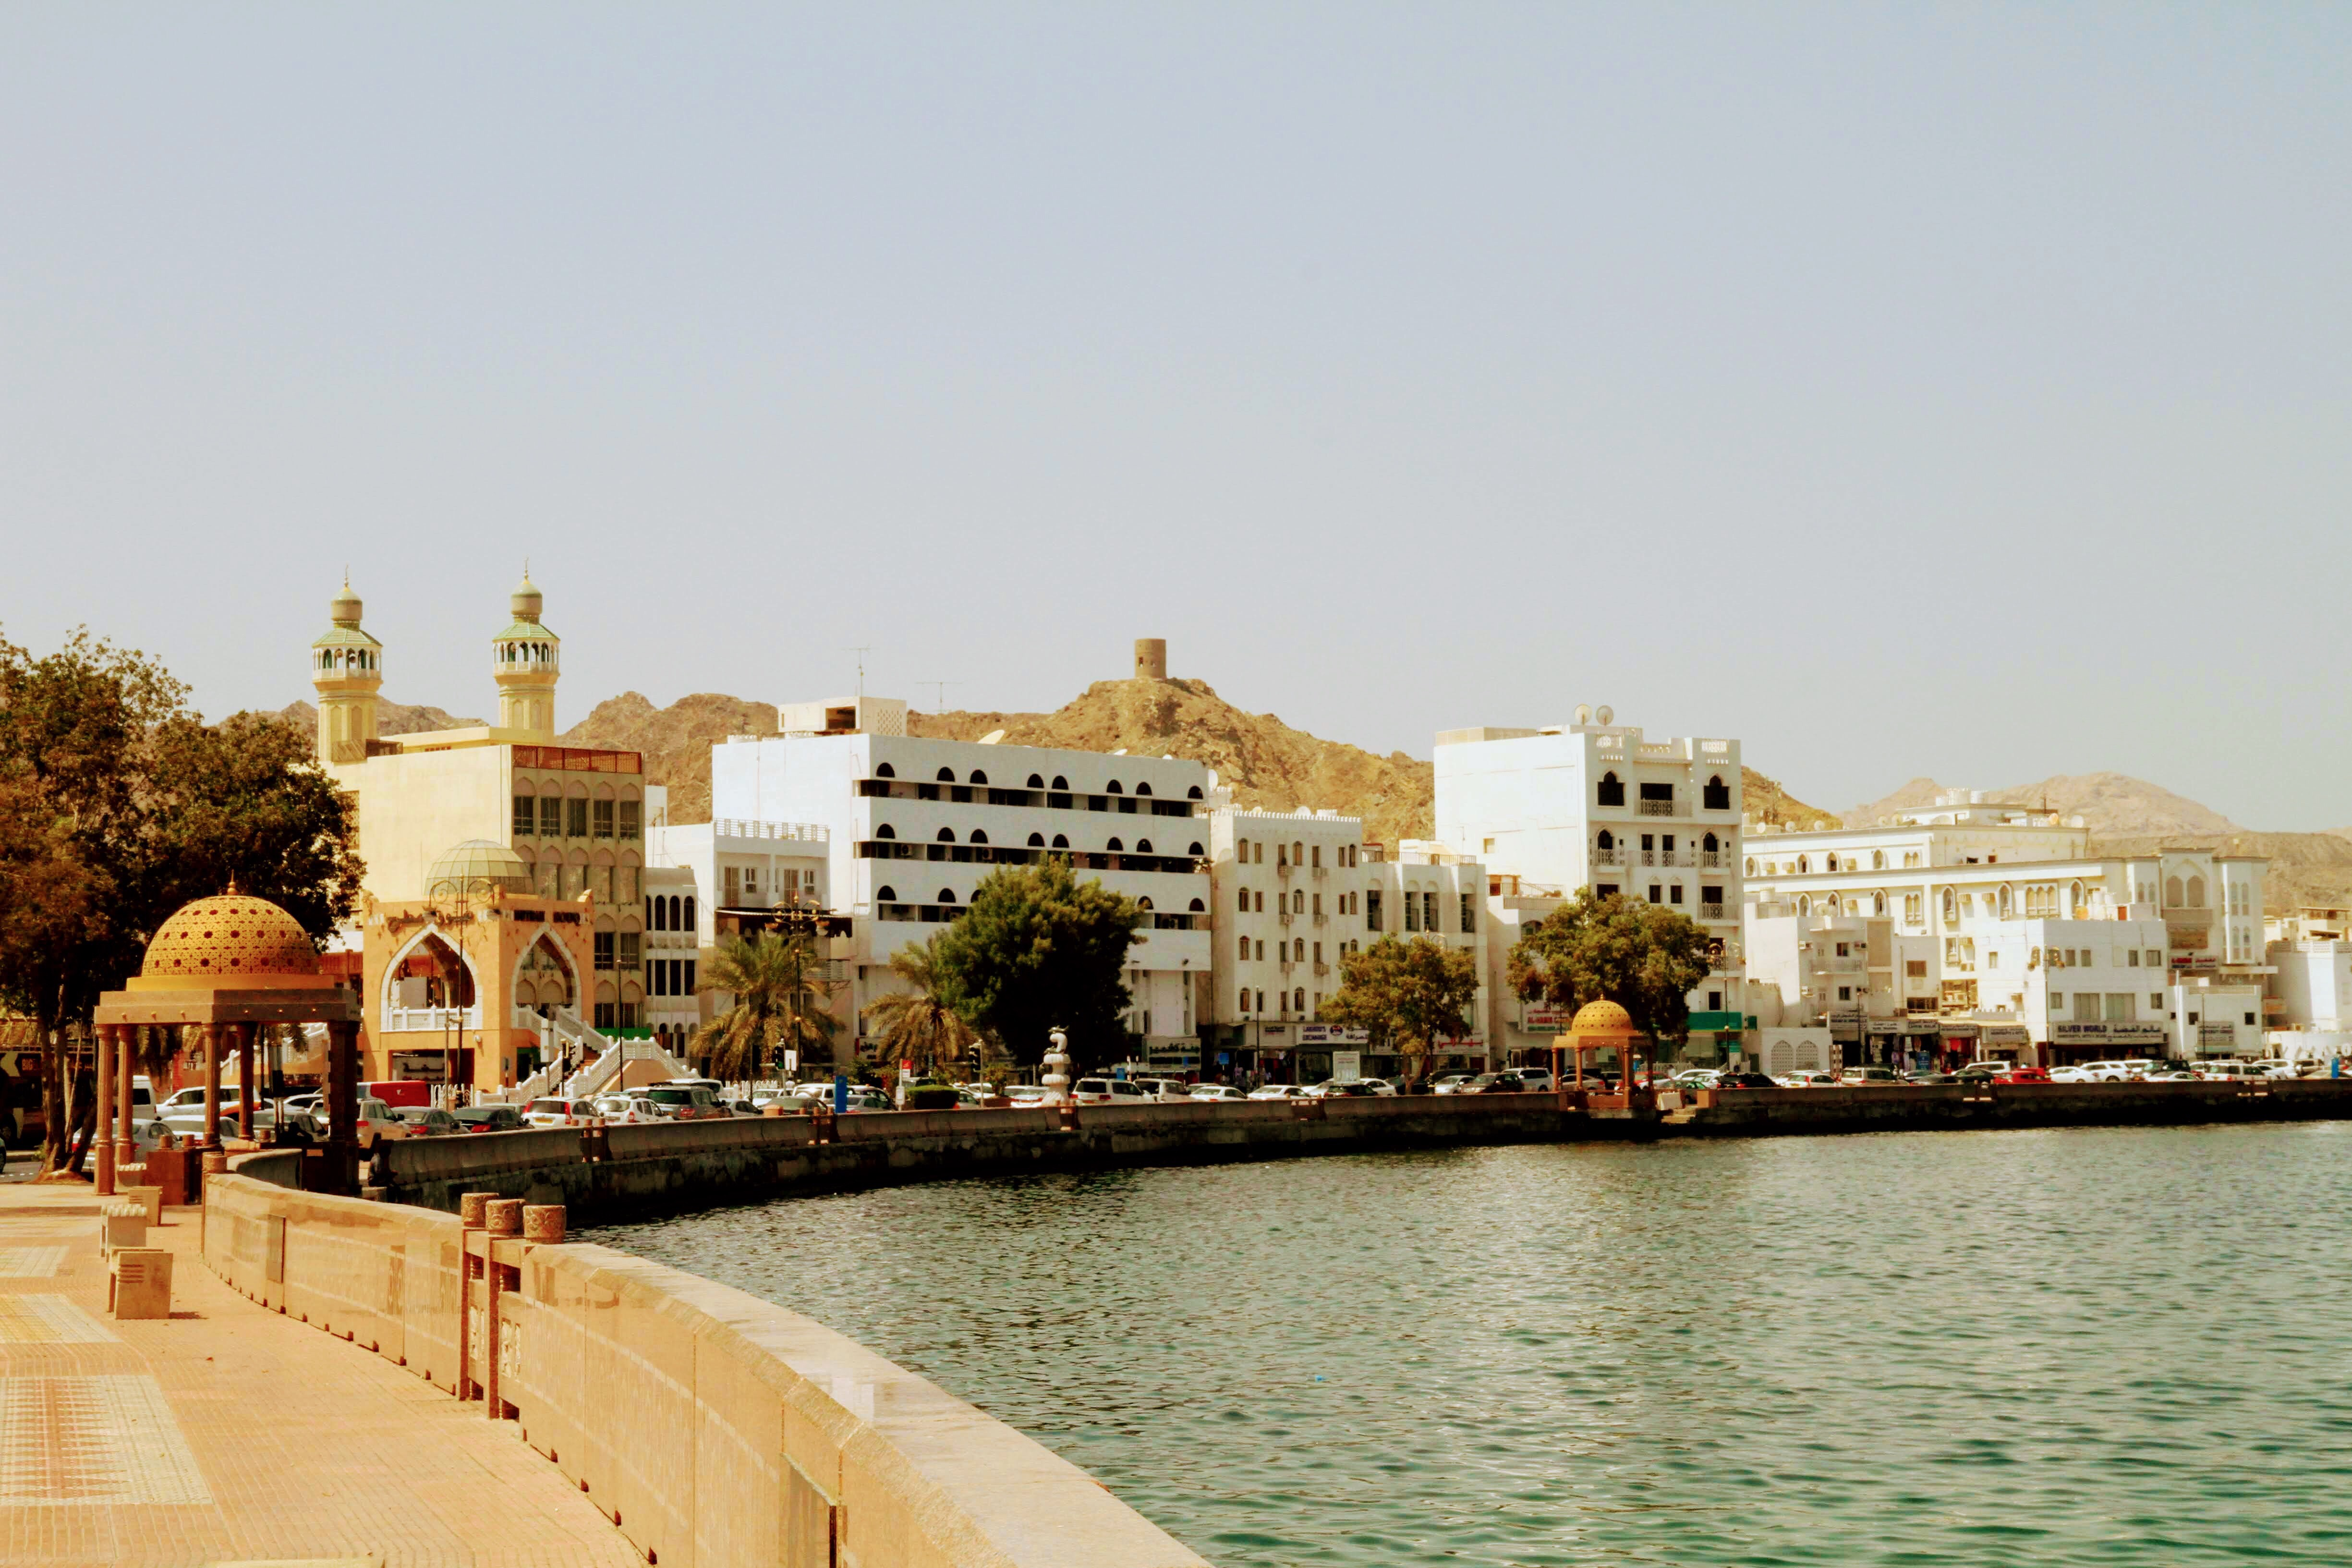 Port of Muttrah, Muscat, Oman